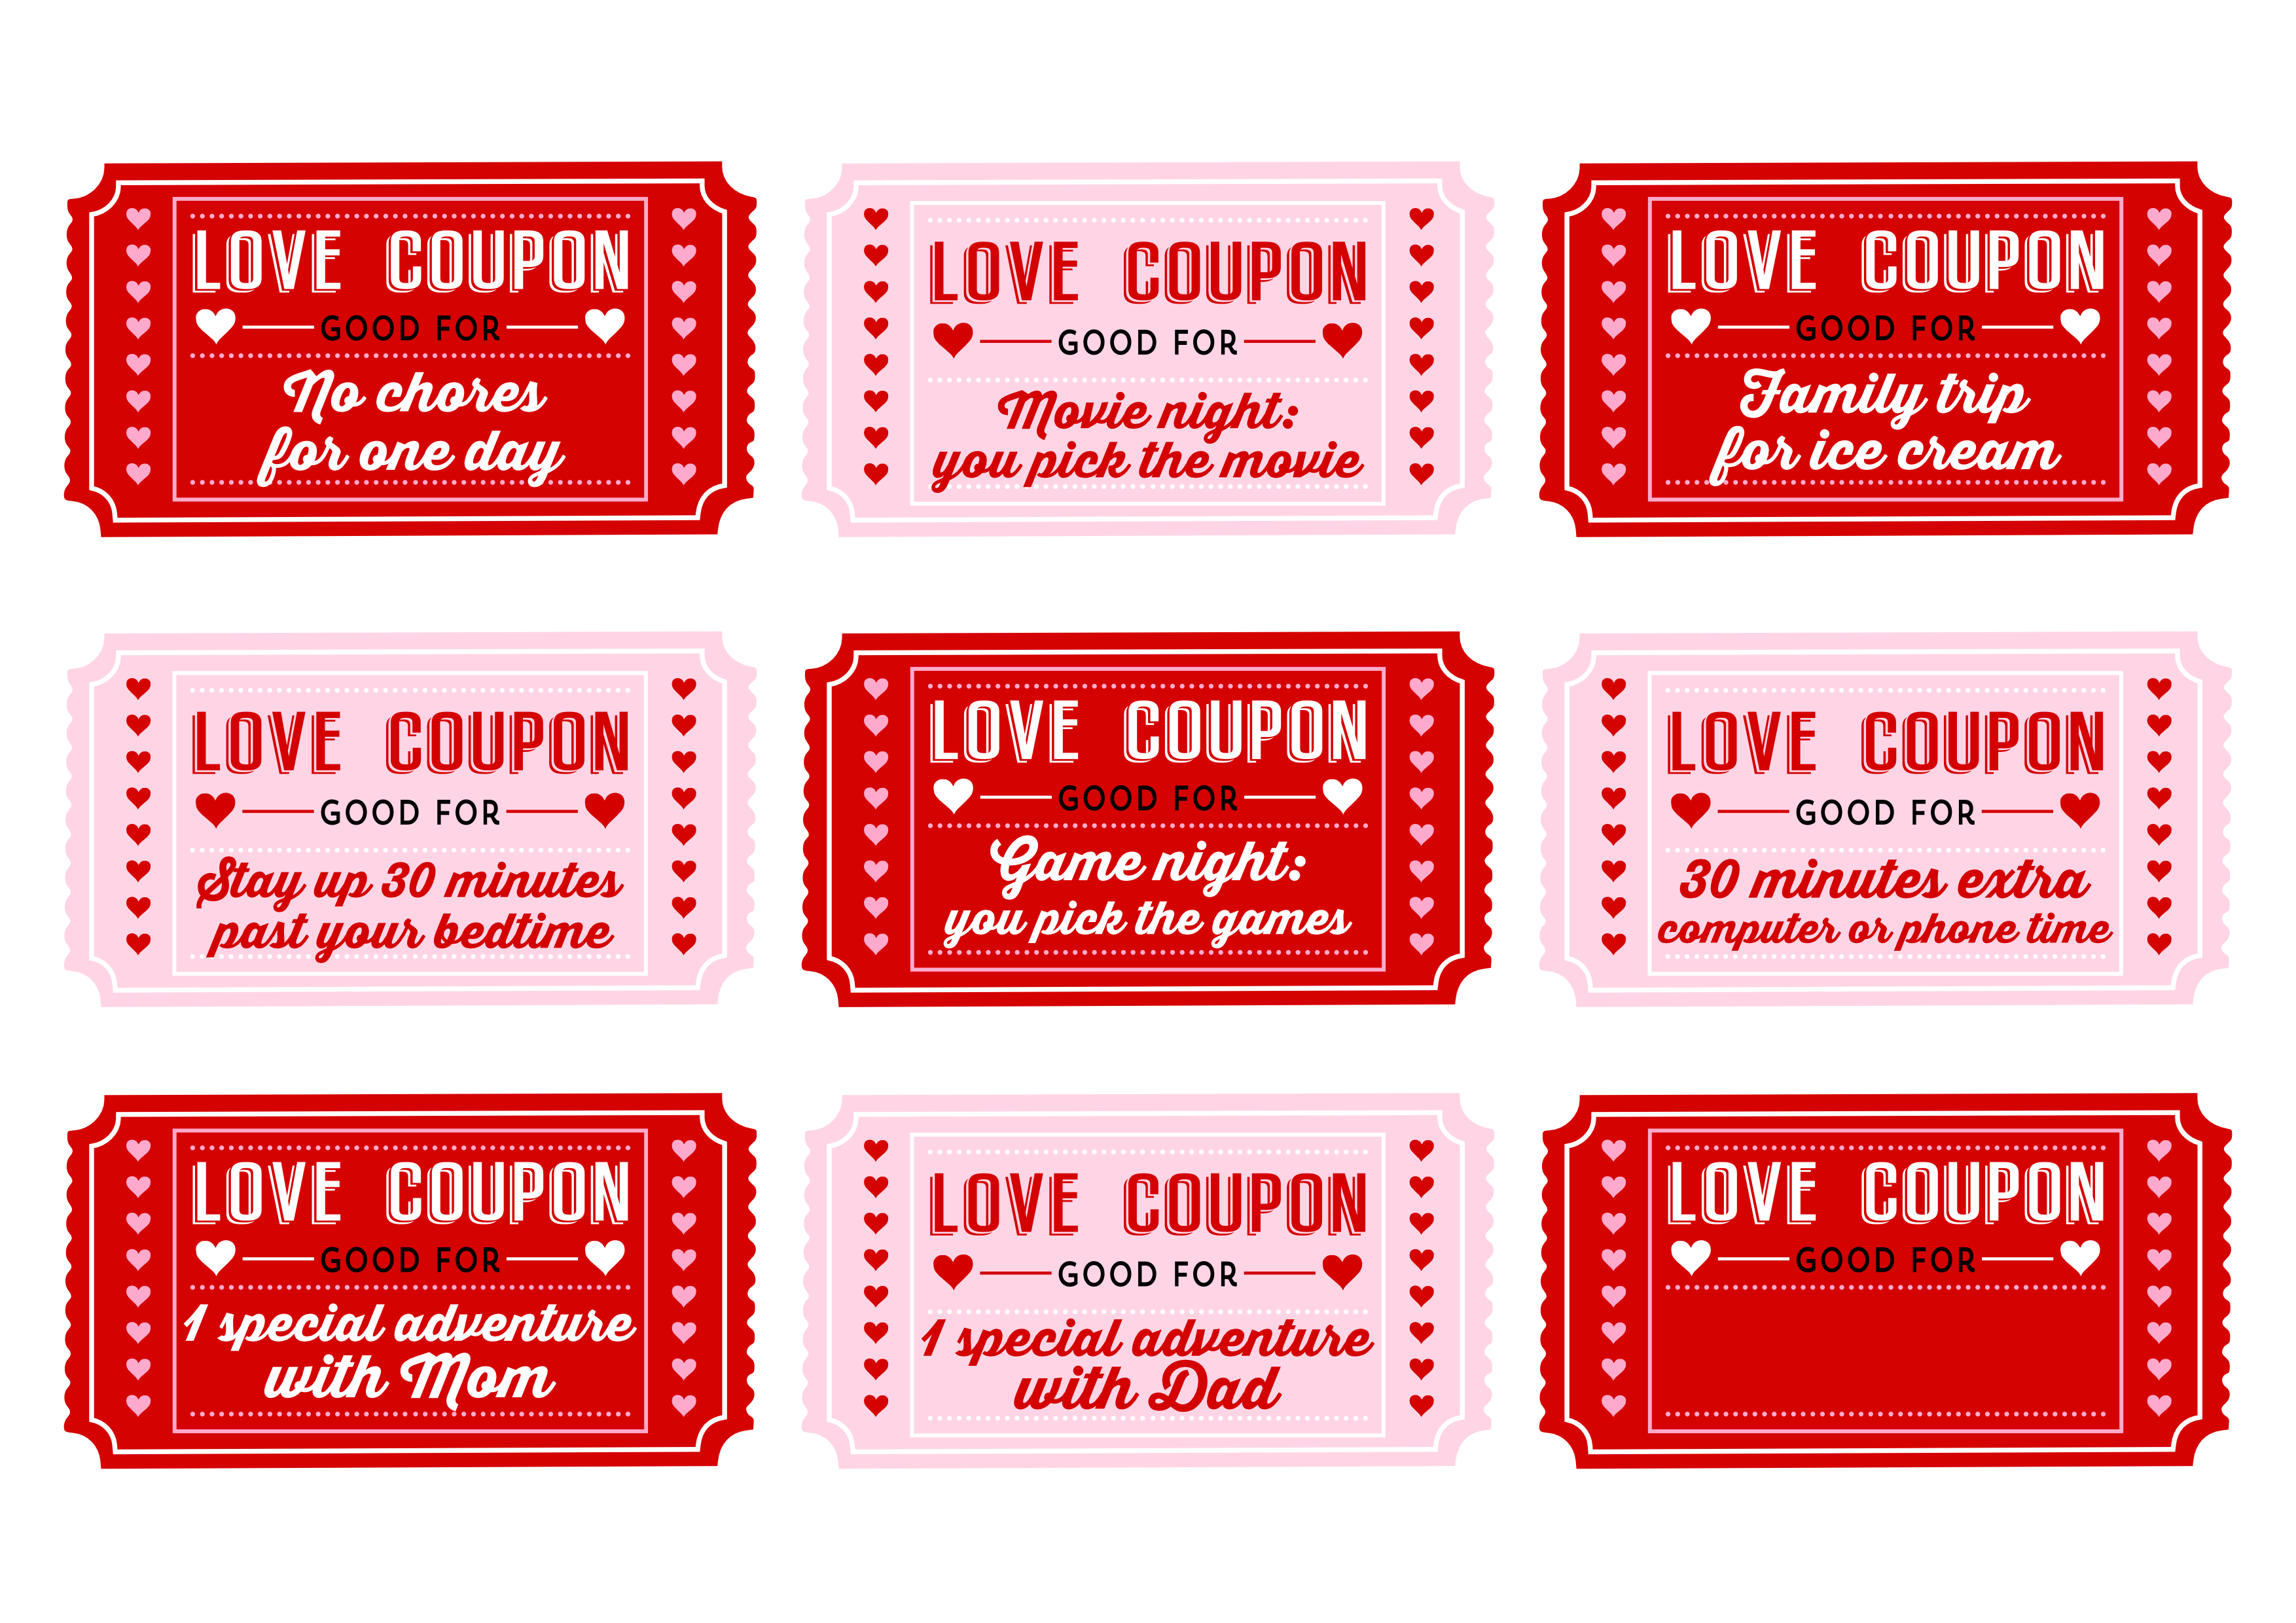 LoveCouponsforKids.png 3,508×2,480 pixels Love